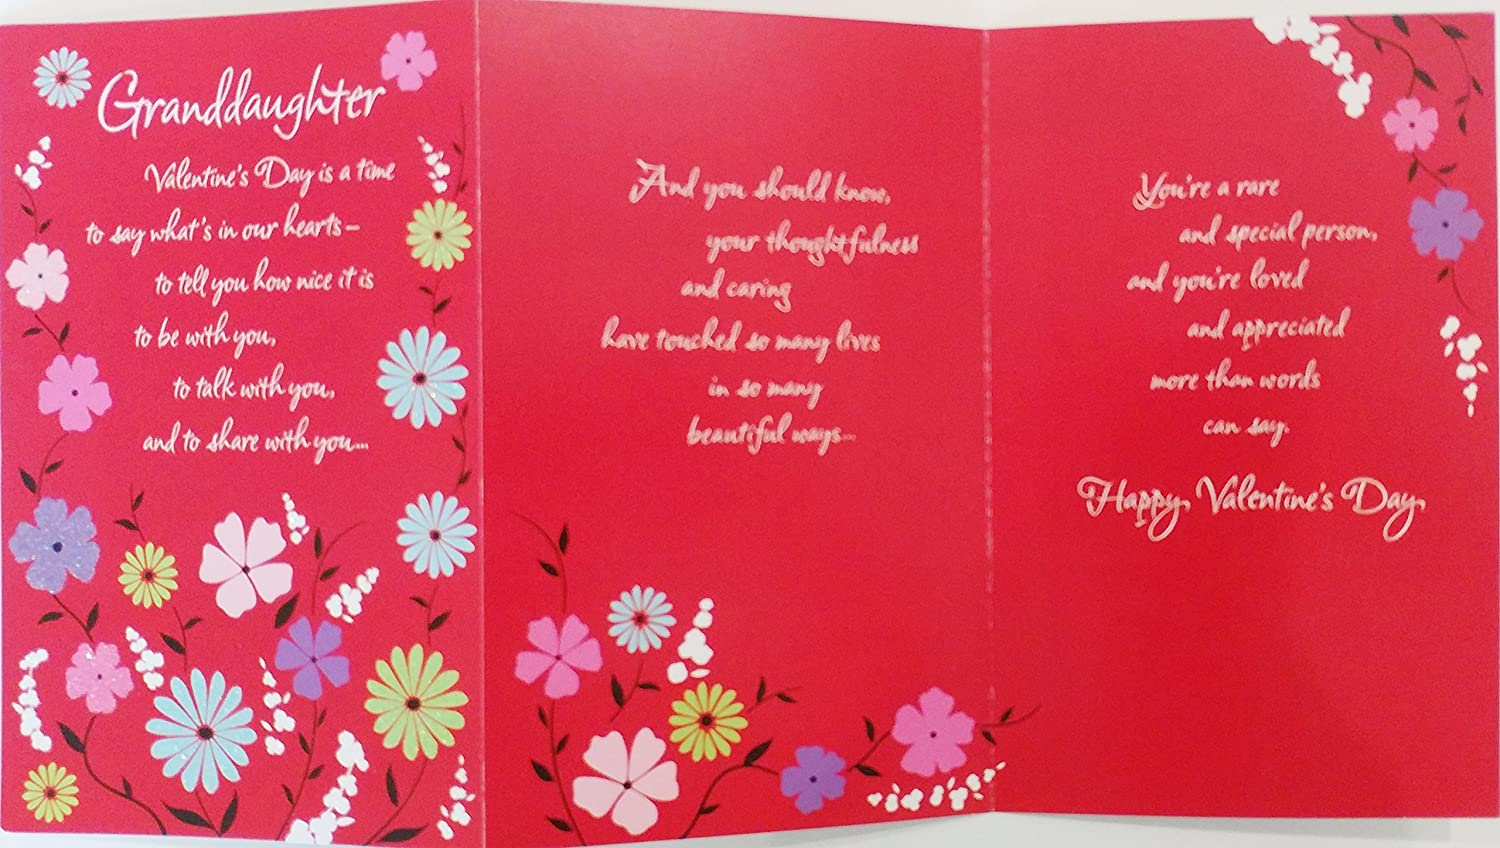 Amazon Granddaughter Happy Valentines Day Greeting Card